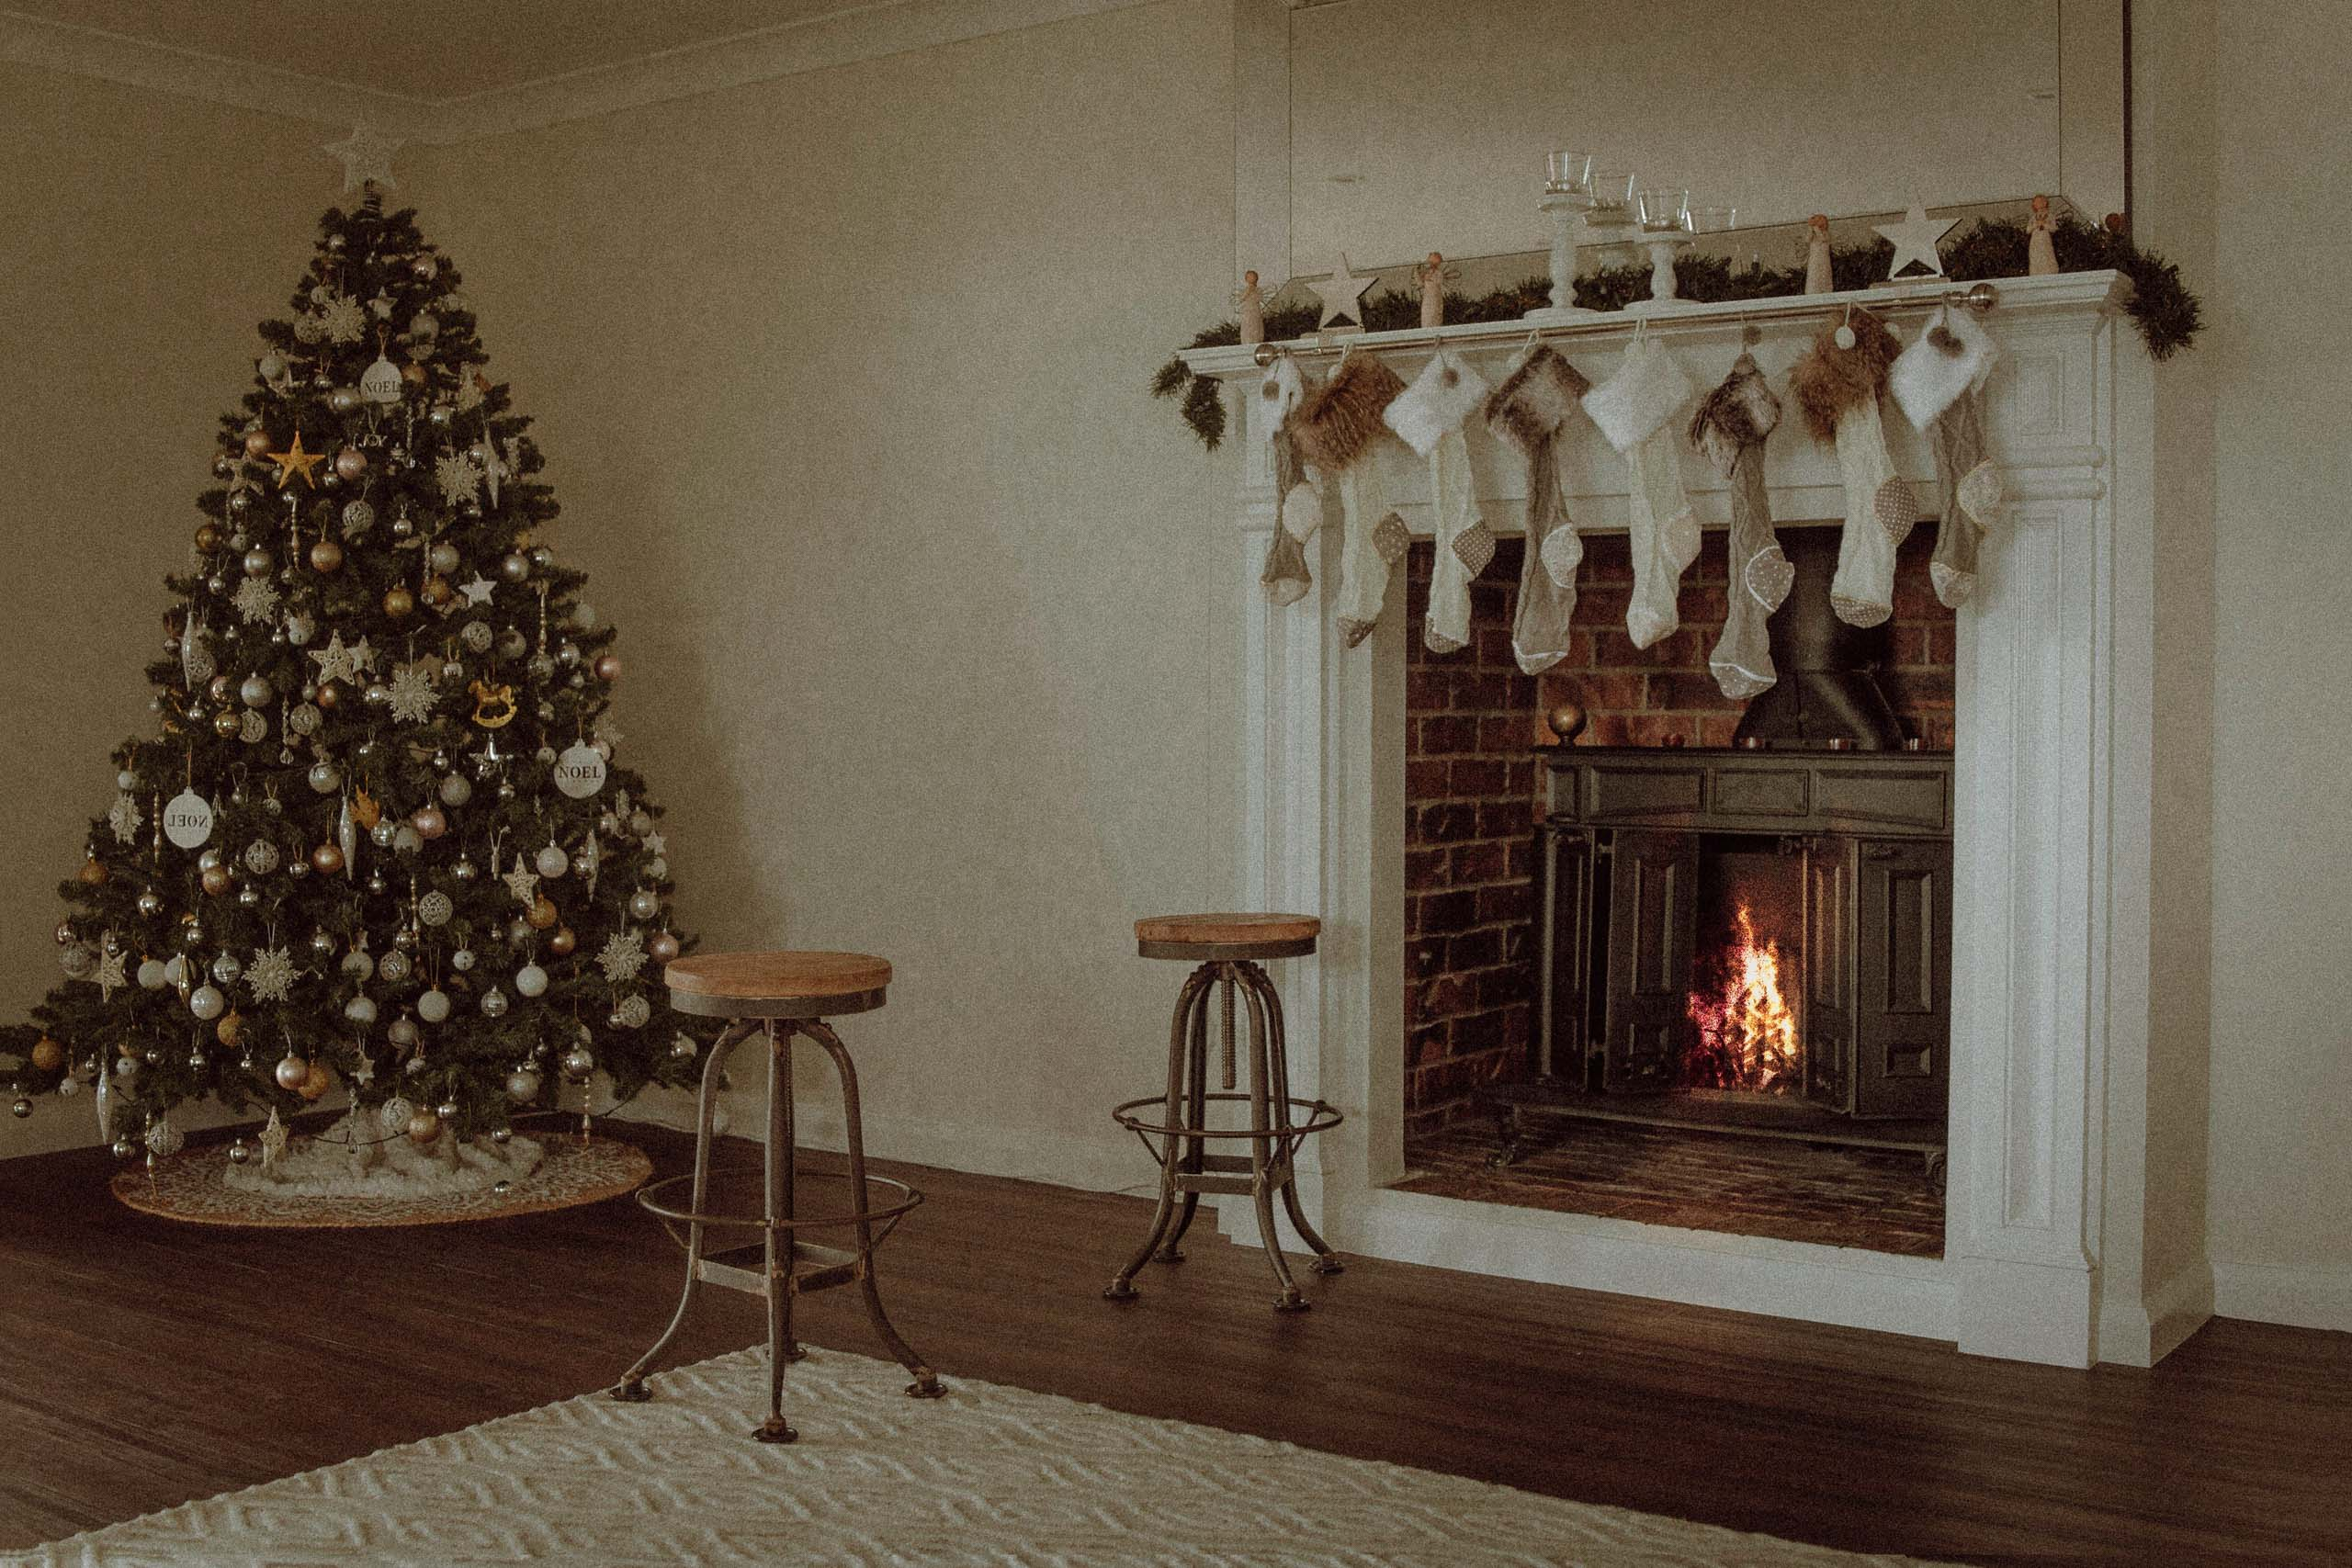 Christmas tree with stockings hanging up over fireplace. Photo by Kyle Head on Unsplash